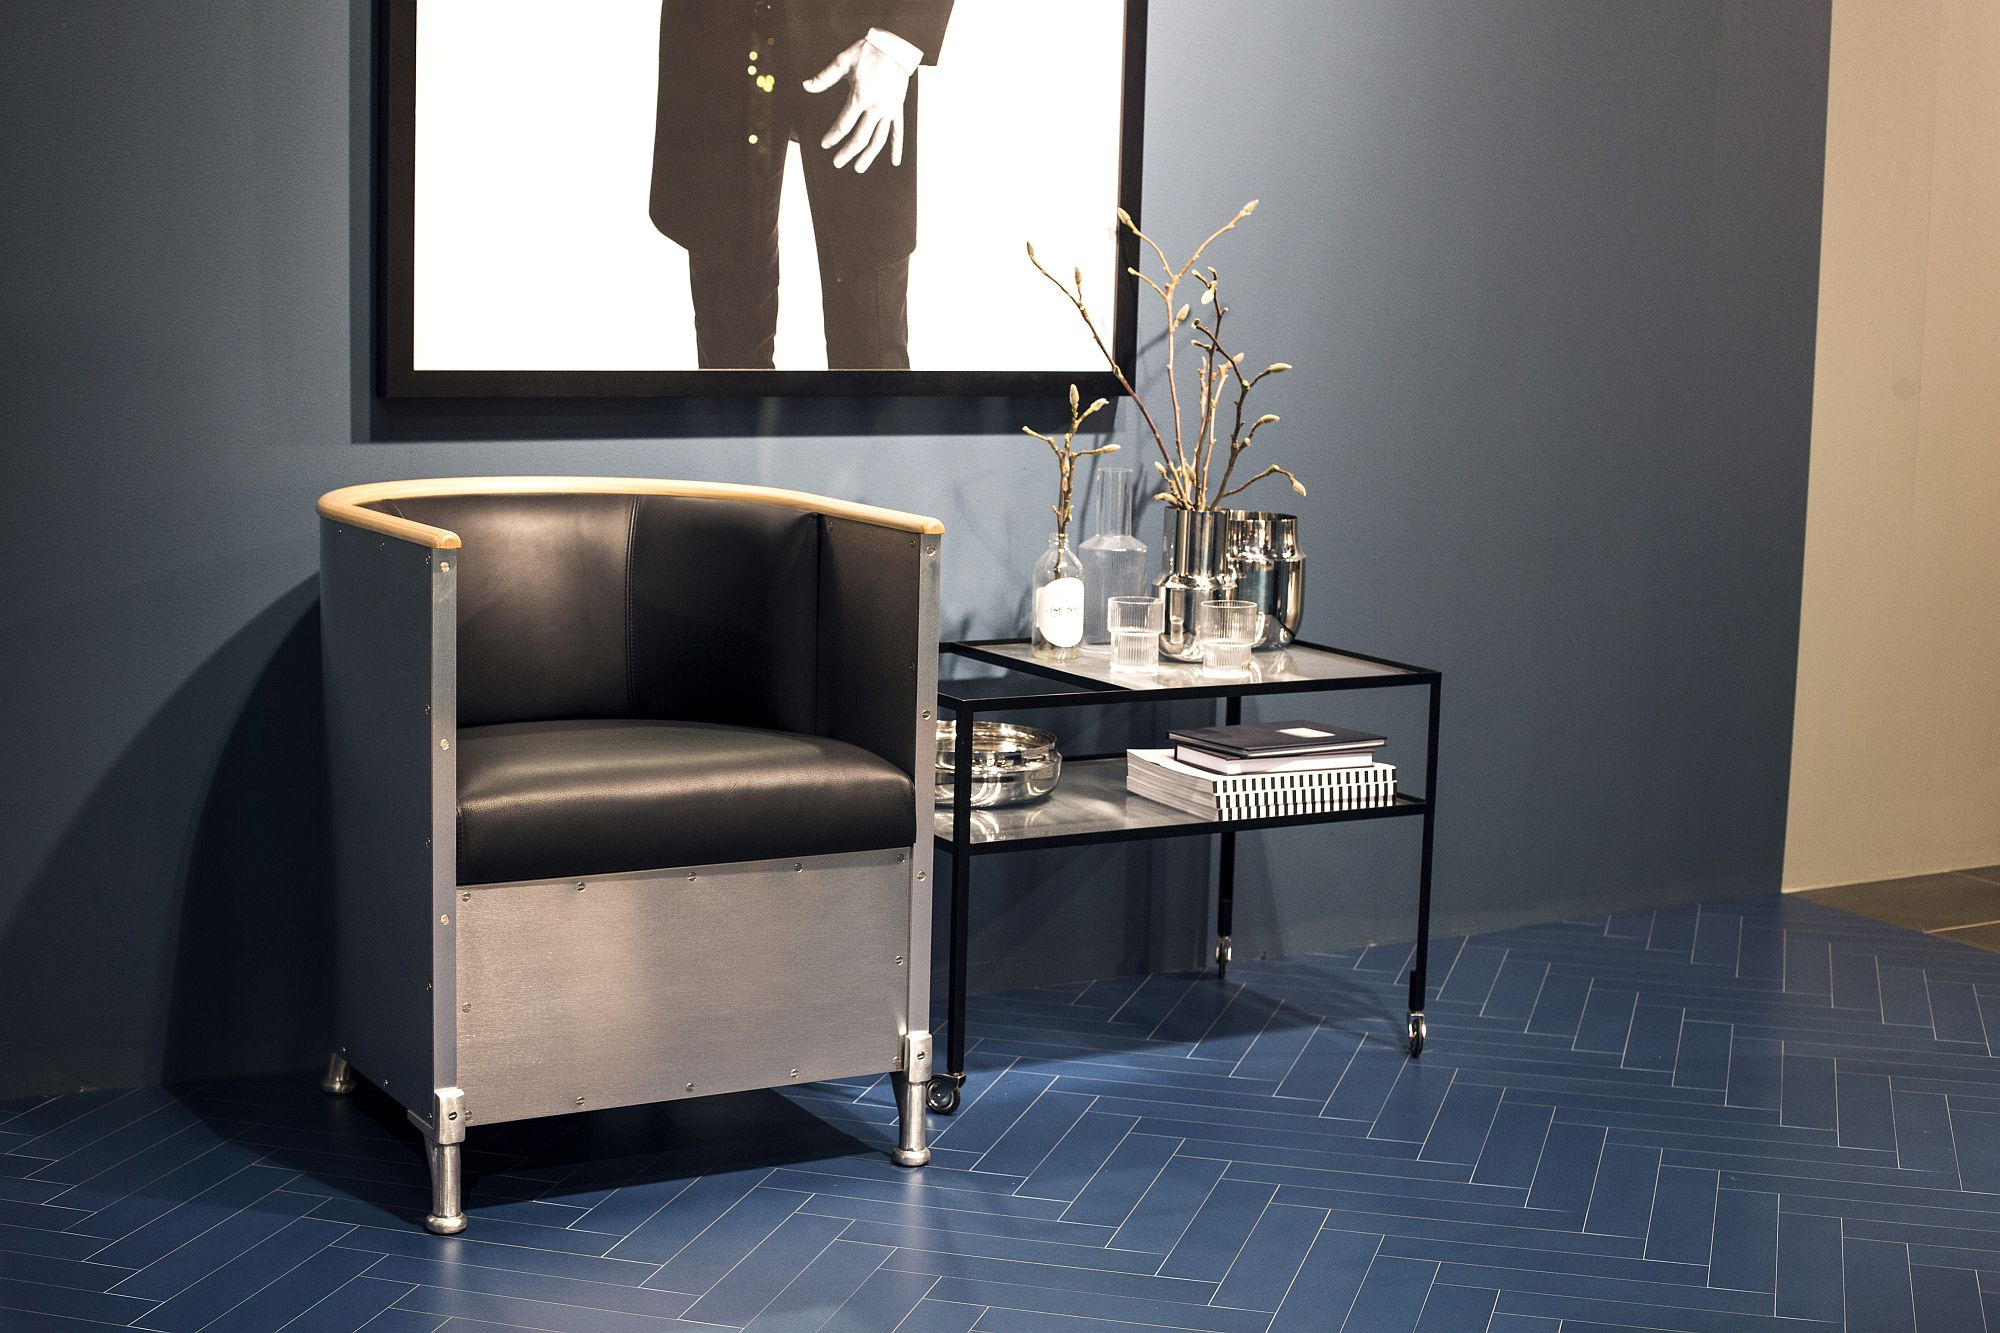 Classy side table on wheels for contemporary interior